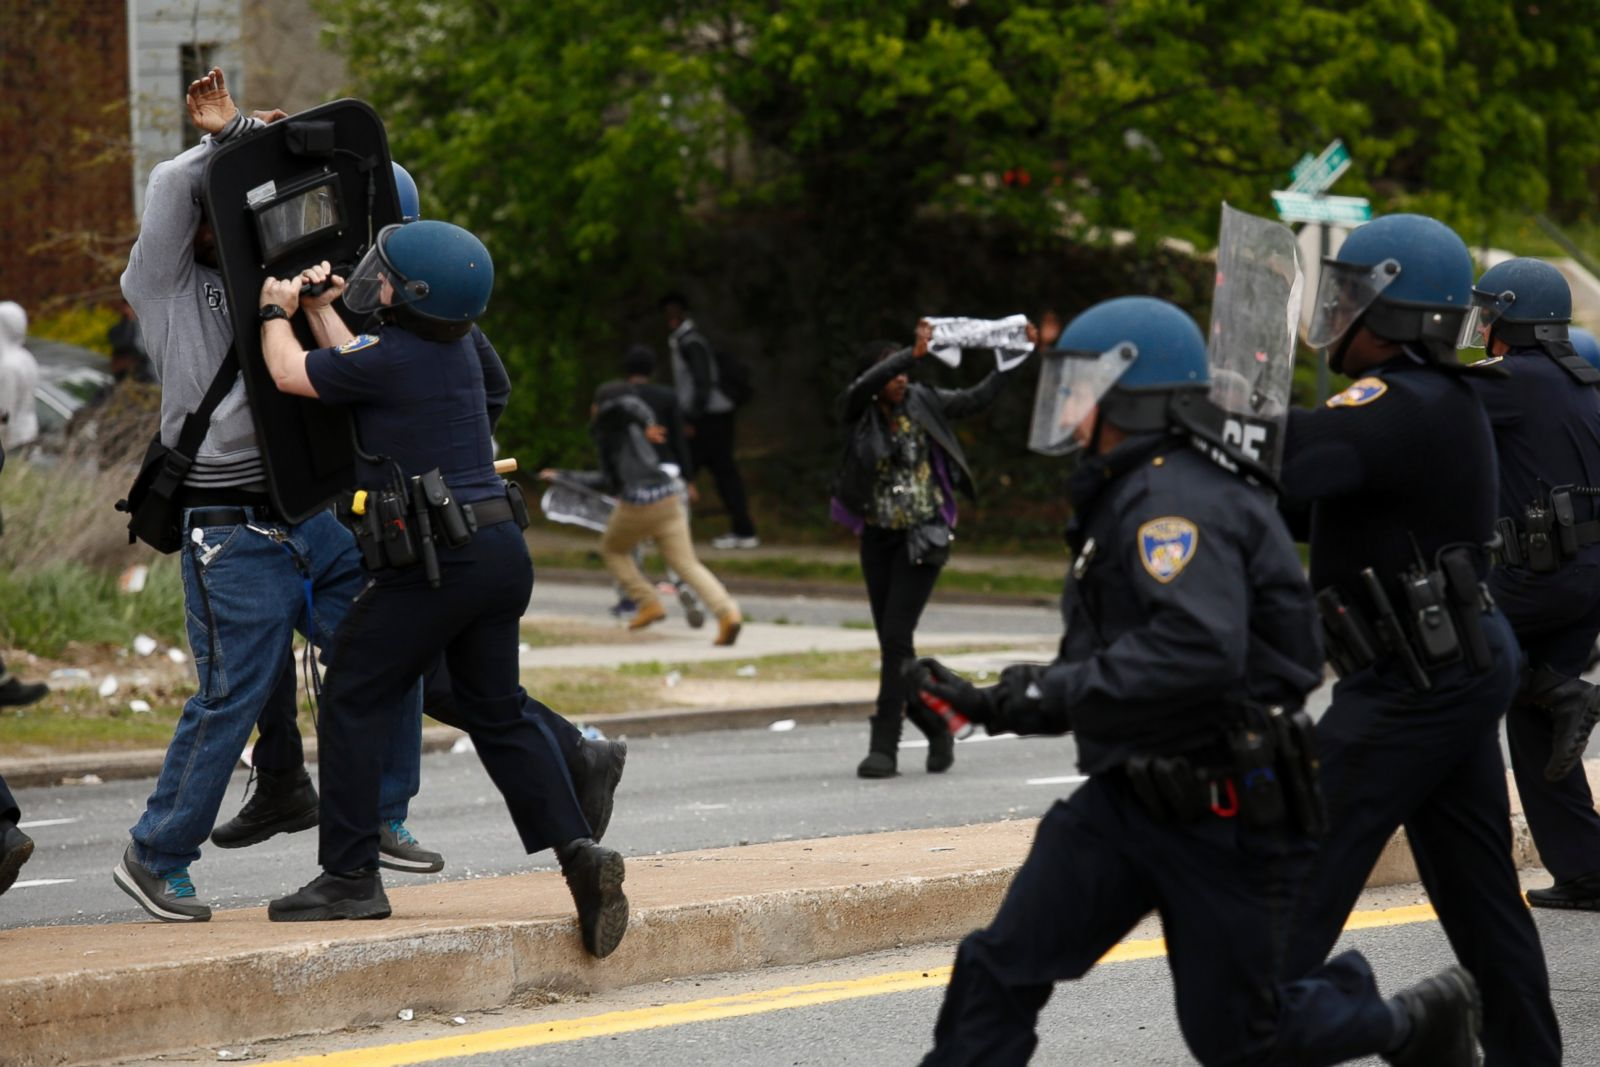 Baltimore police officers in riot gear push protestors back along - Baltimore Police Officers In Riot Gear Push Protestors Back Along 10